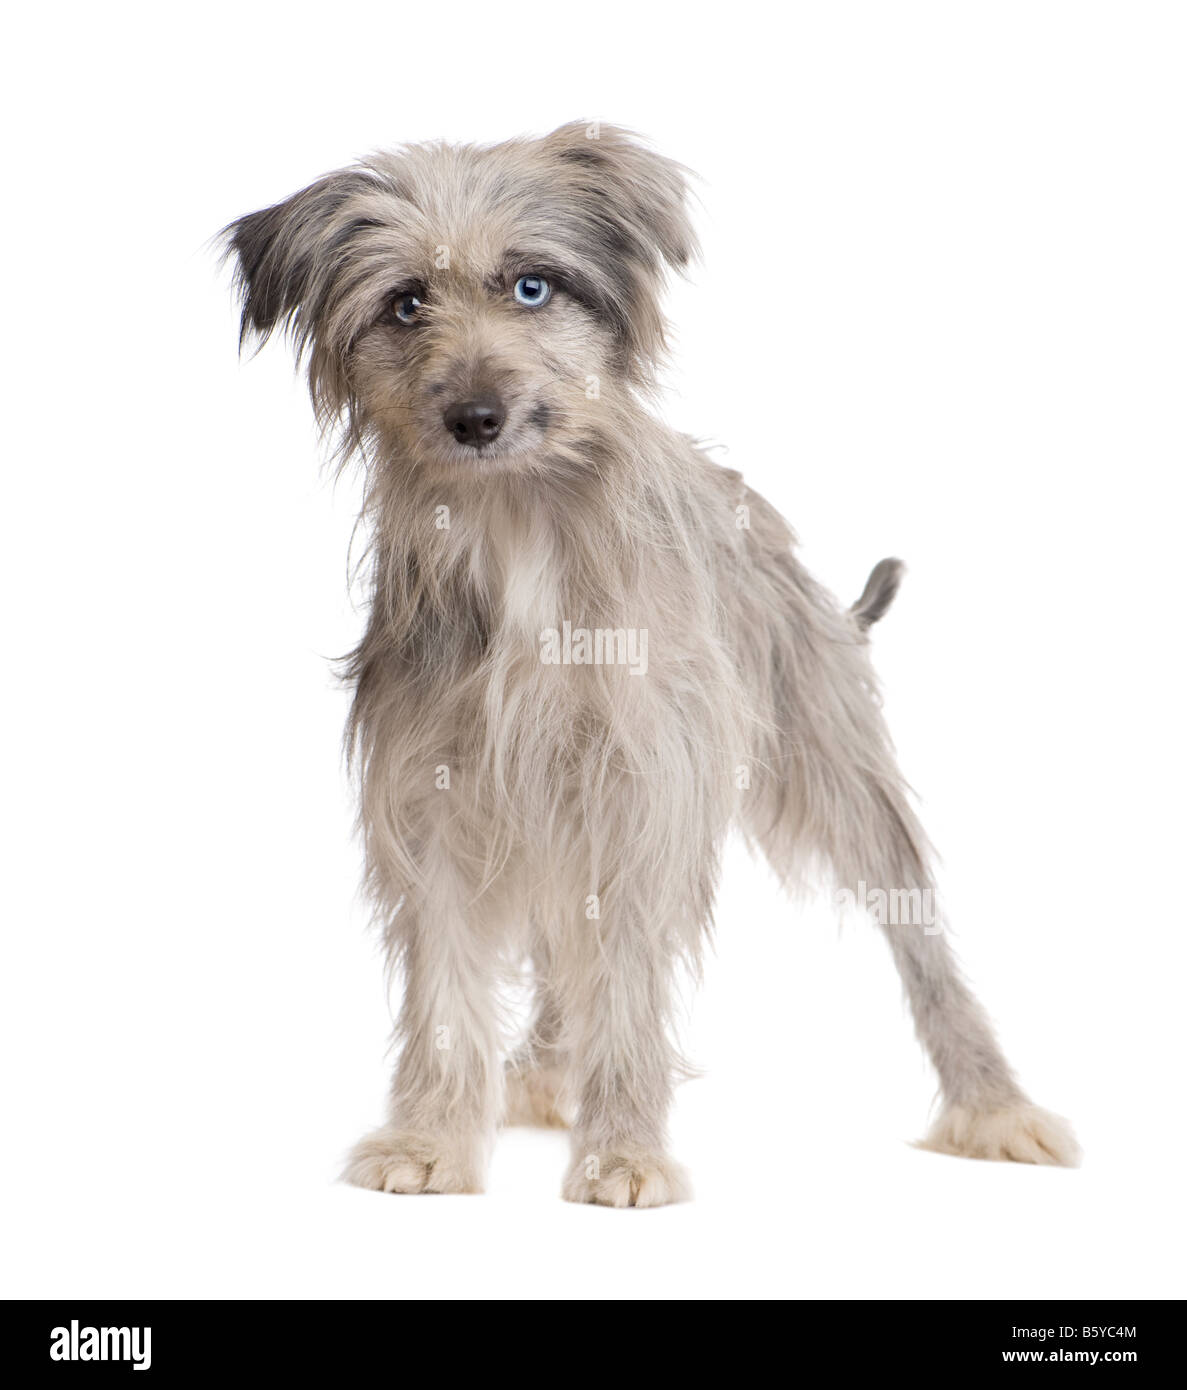 Pyrenean Shepherd 18 weeks in front of a white background - Stock Image